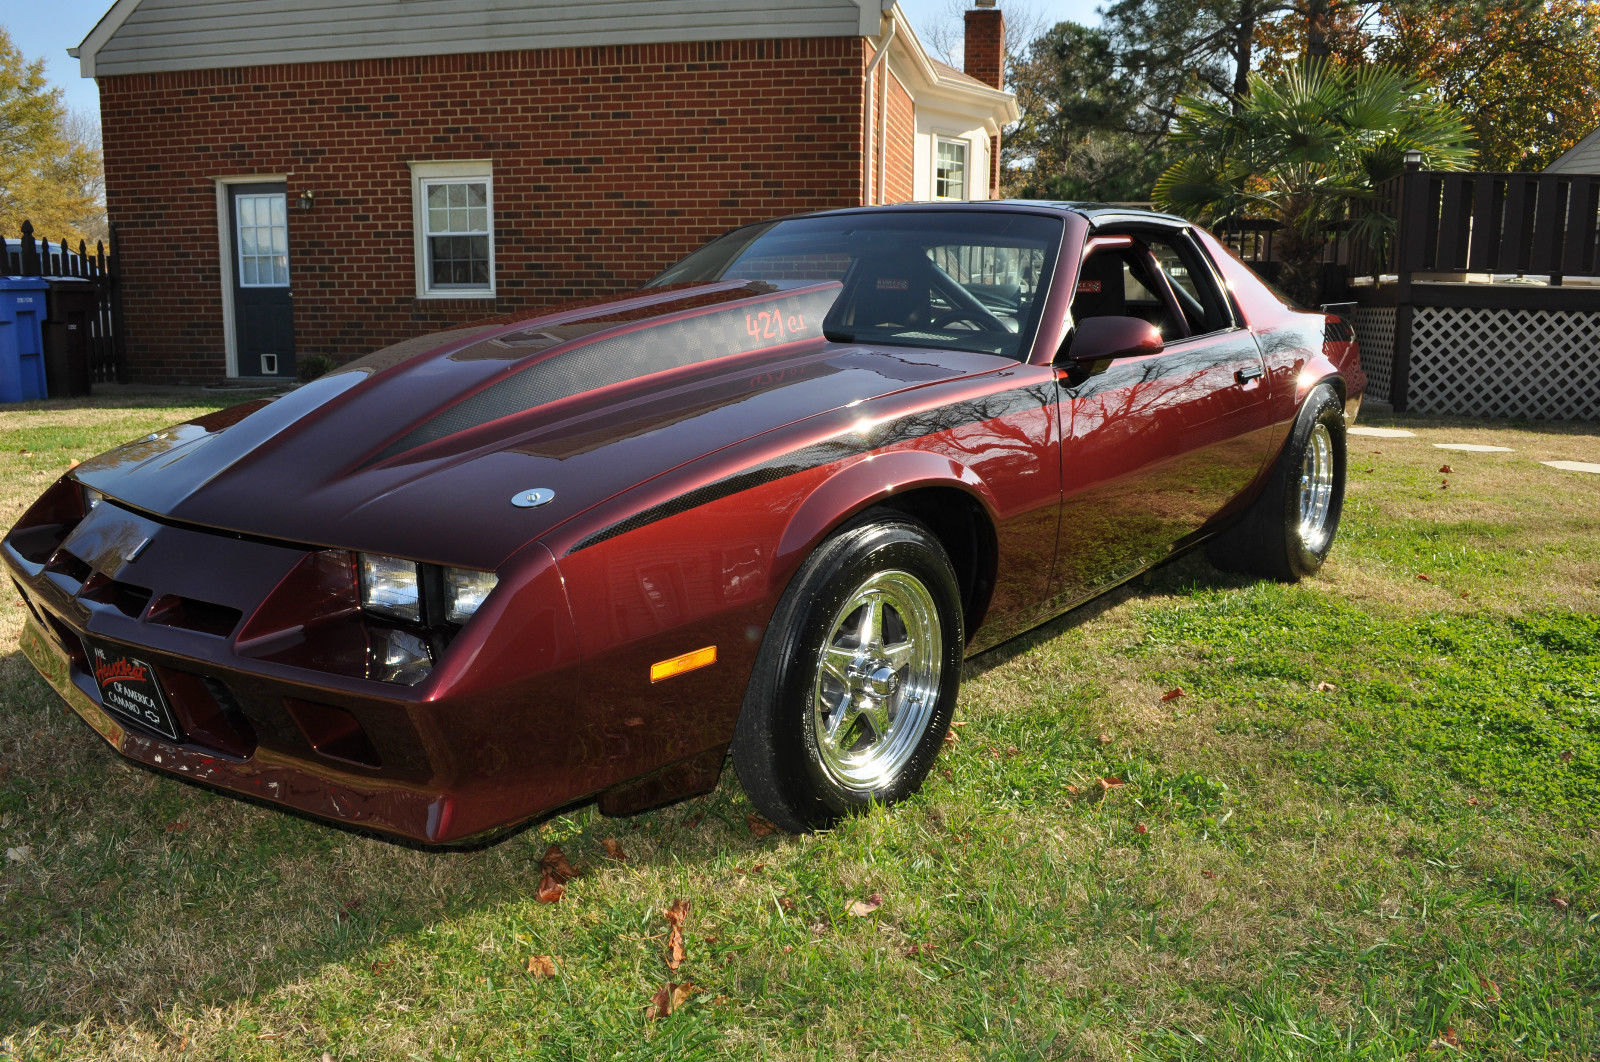 1983 chevrolet camaro pro street real street outlaw race car show car for sale photos. Black Bedroom Furniture Sets. Home Design Ideas